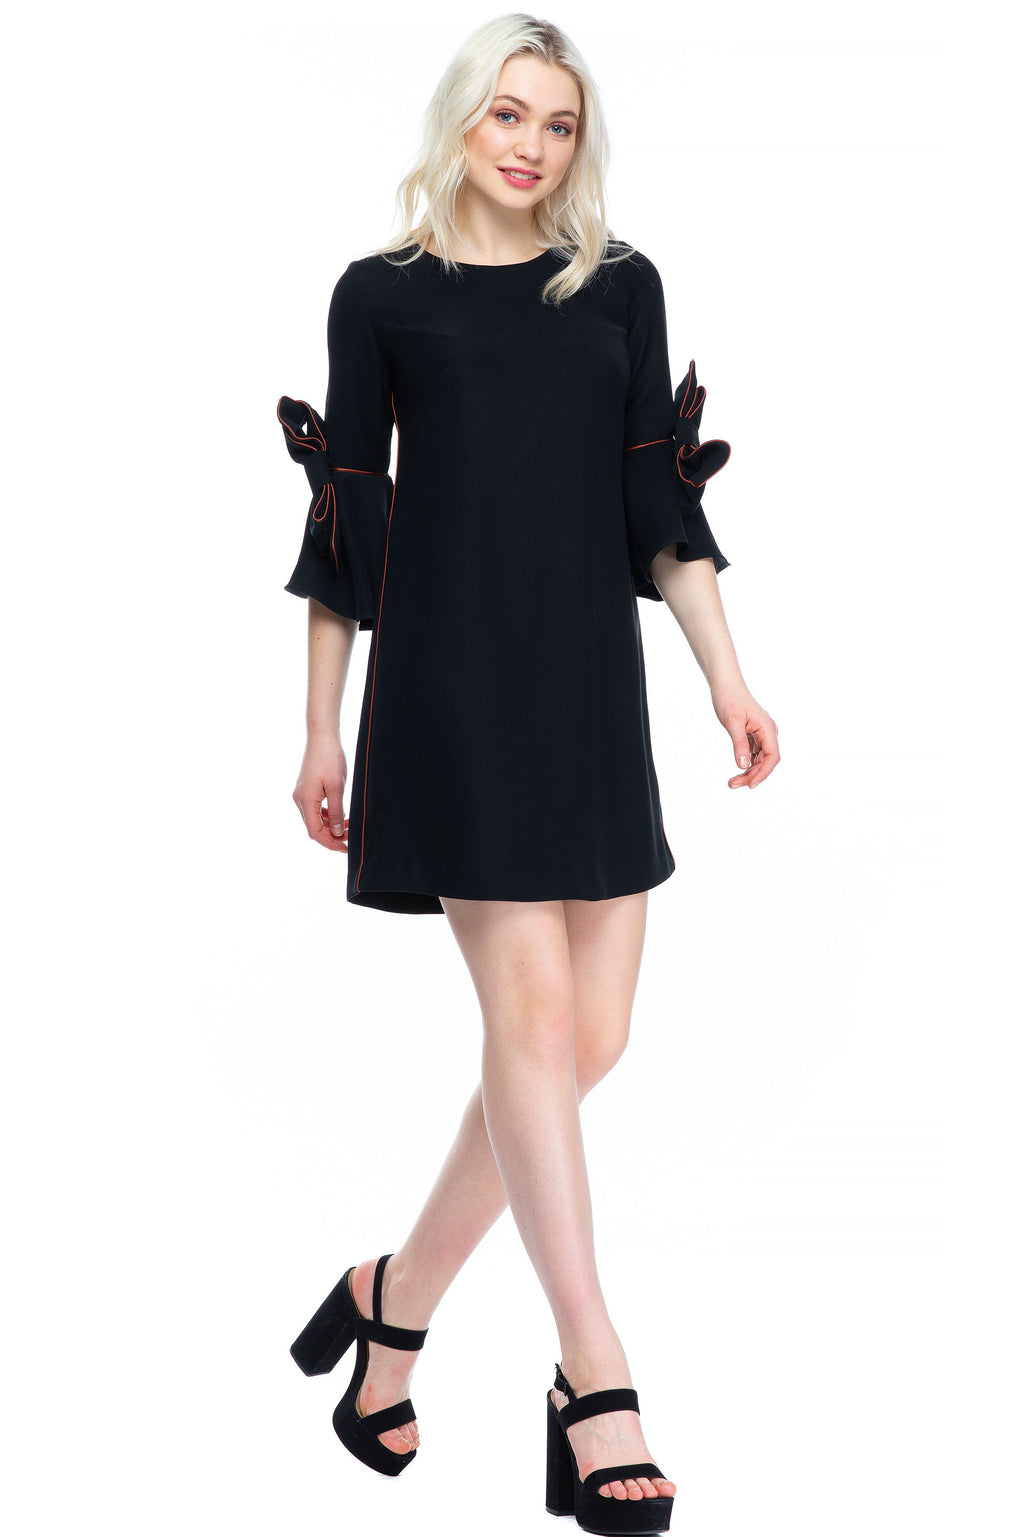 The Marlene Maternity Shift Dress Caviar